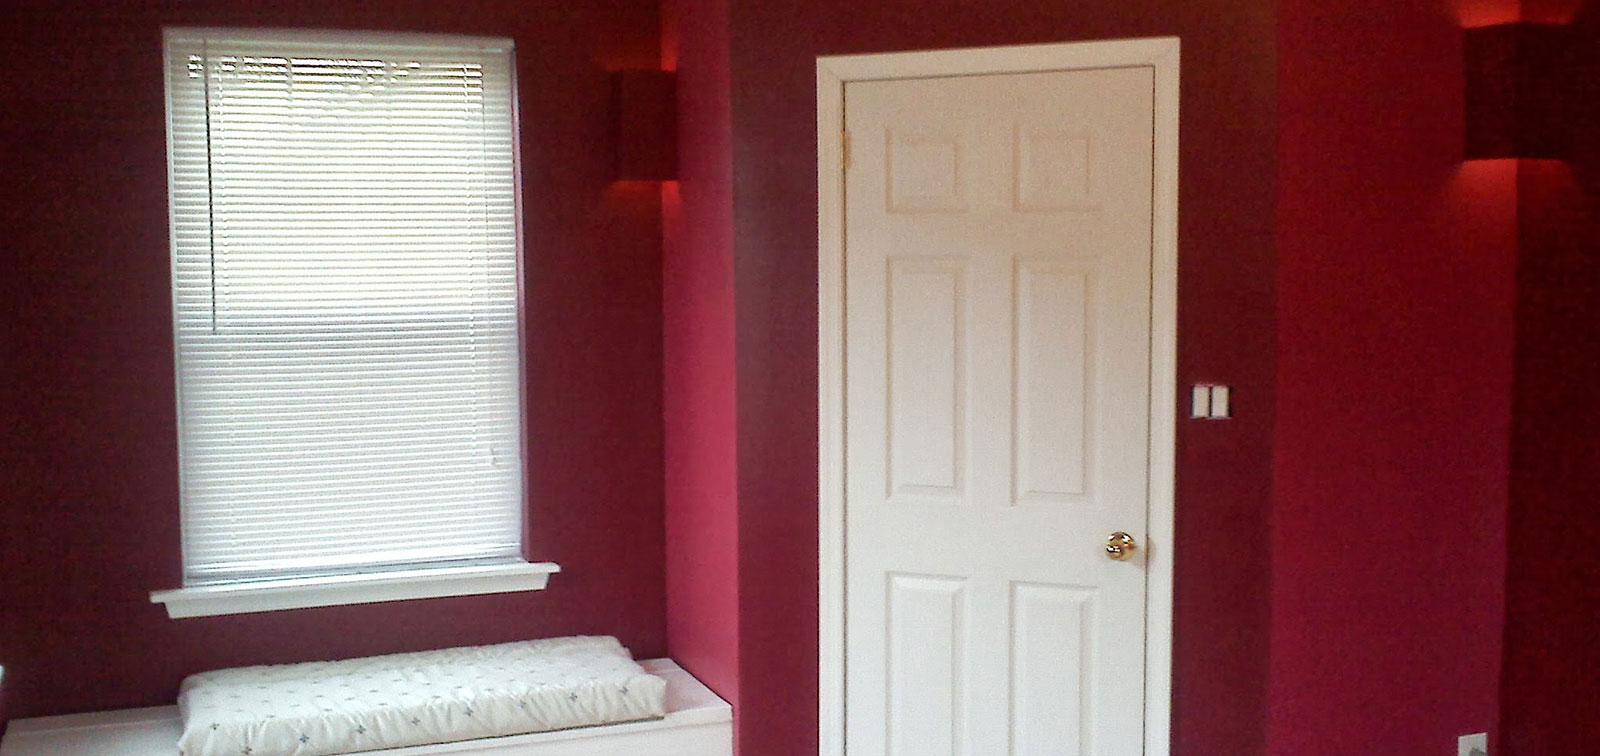 photo of bedroom showing beautiful deep red against classic white closets and moldings